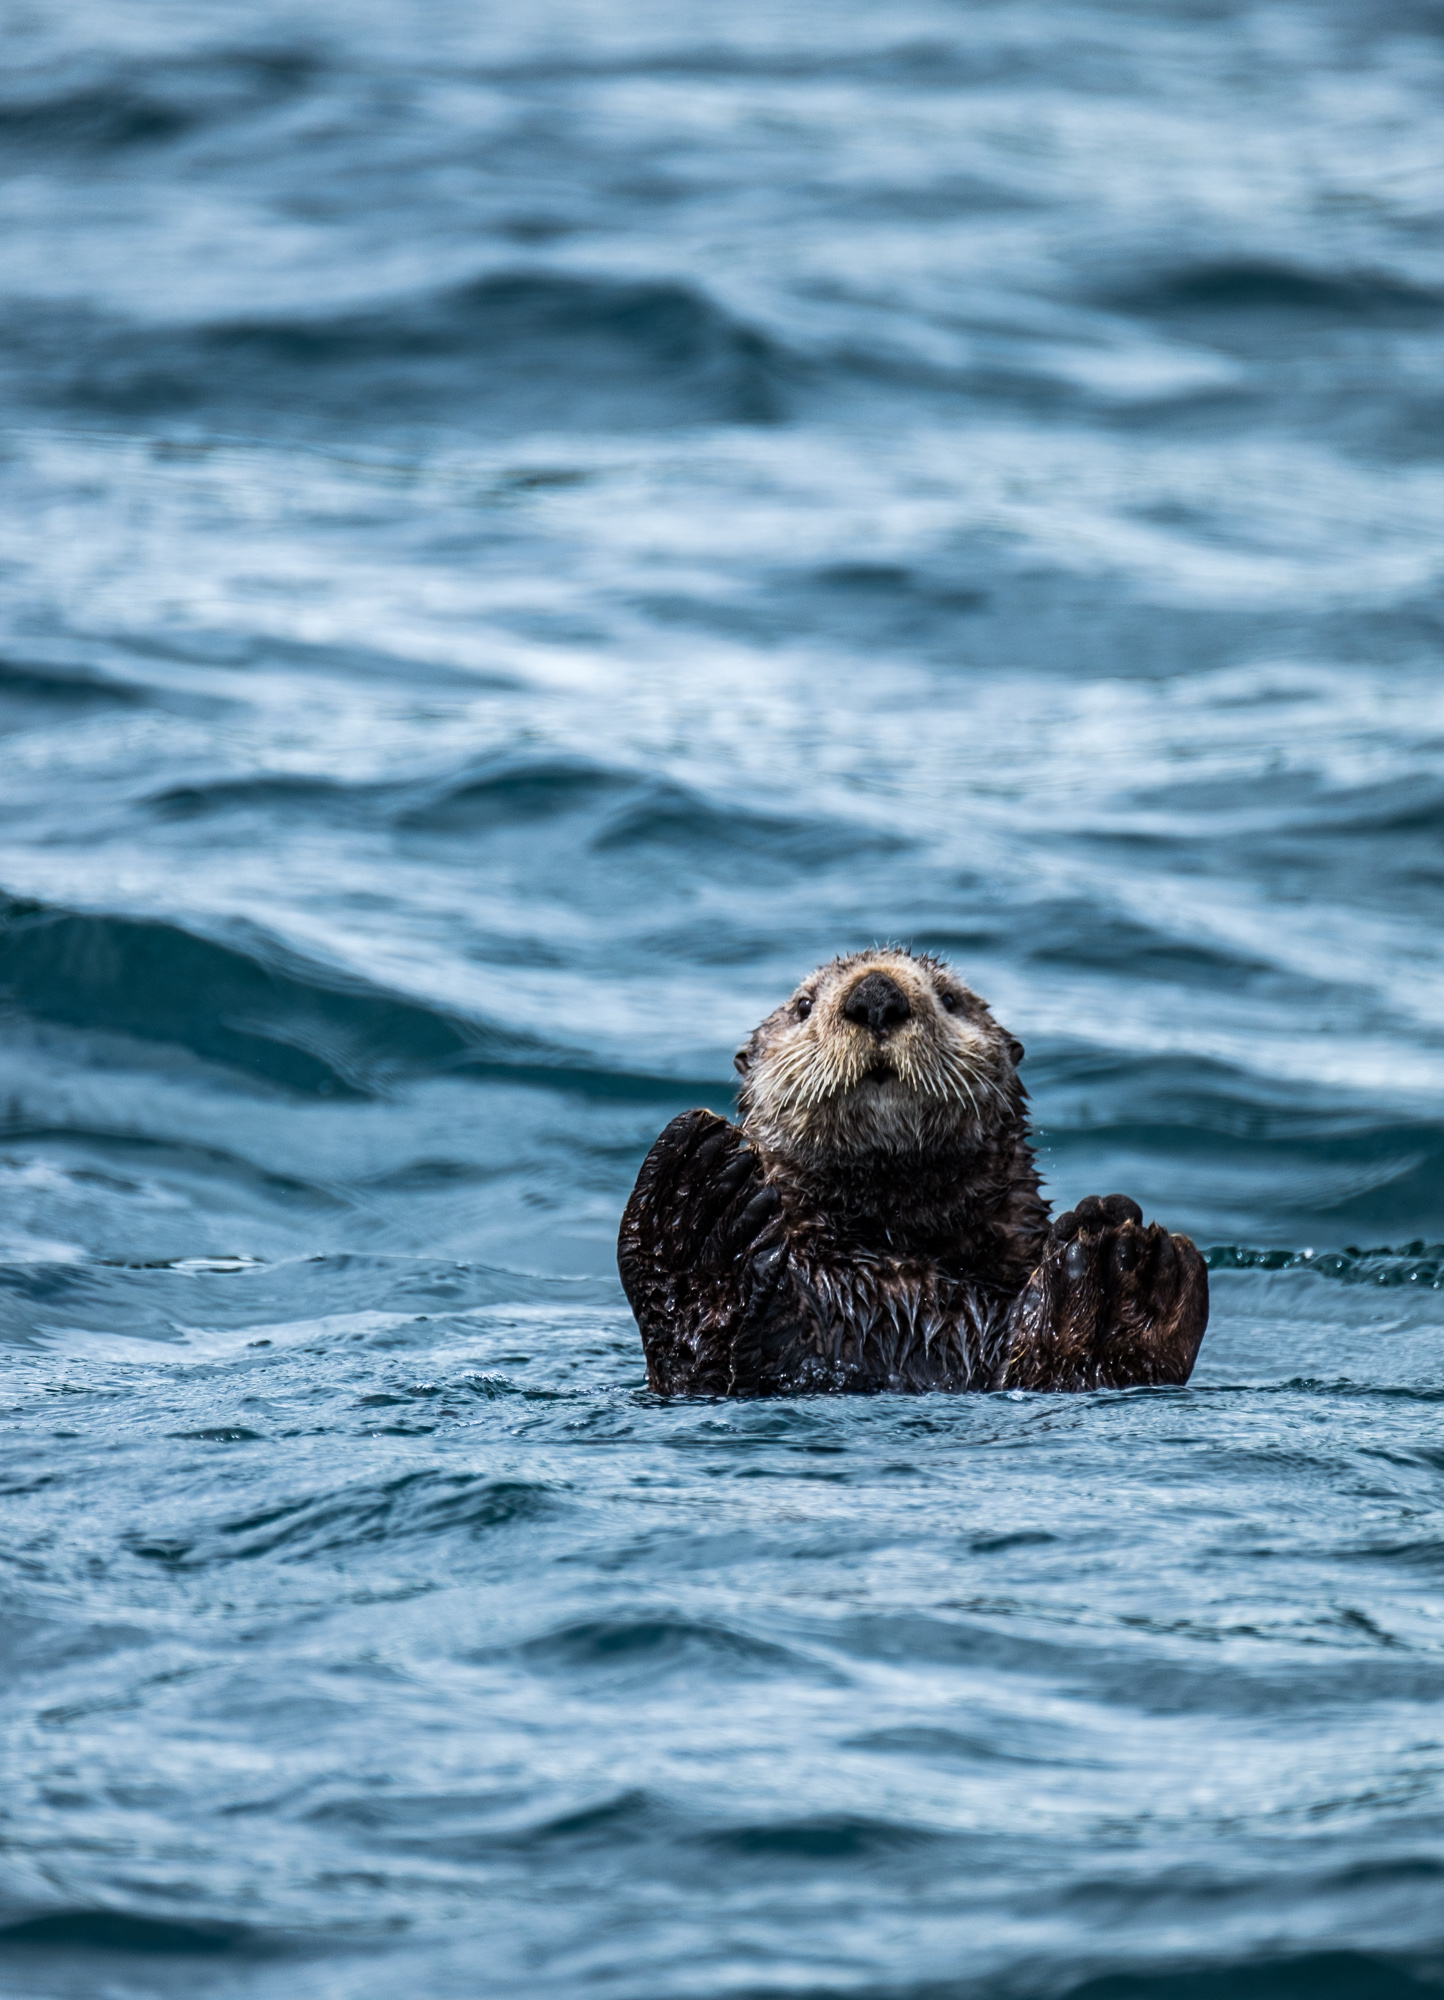 We absolutely fell in love with the sea otters here. They are so funny, and fascinating. Check out our otter facts in the Did You Know section of this page.